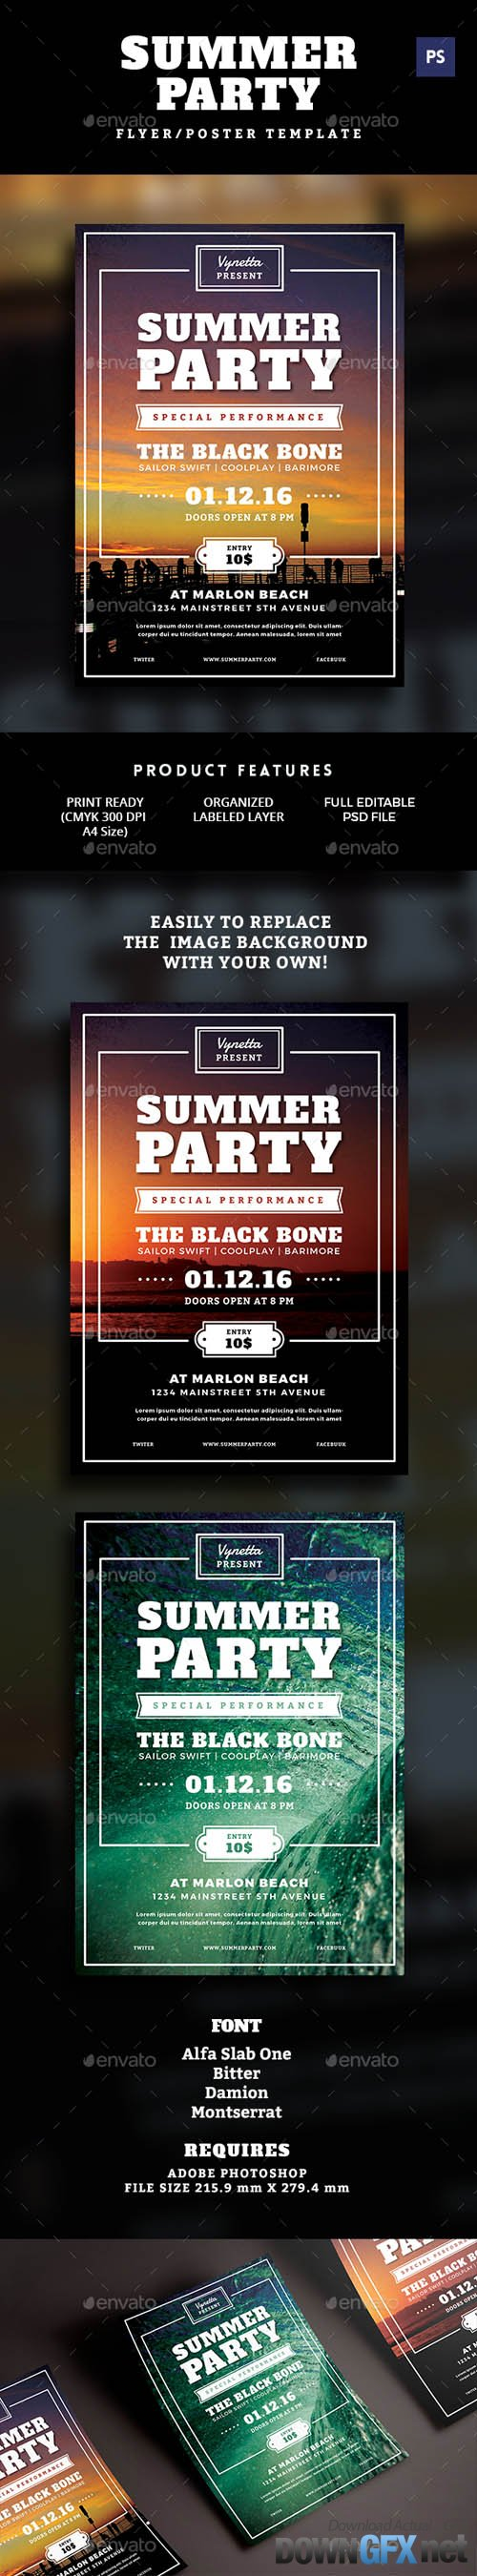 Summer Party Poster/Flyer 15830535